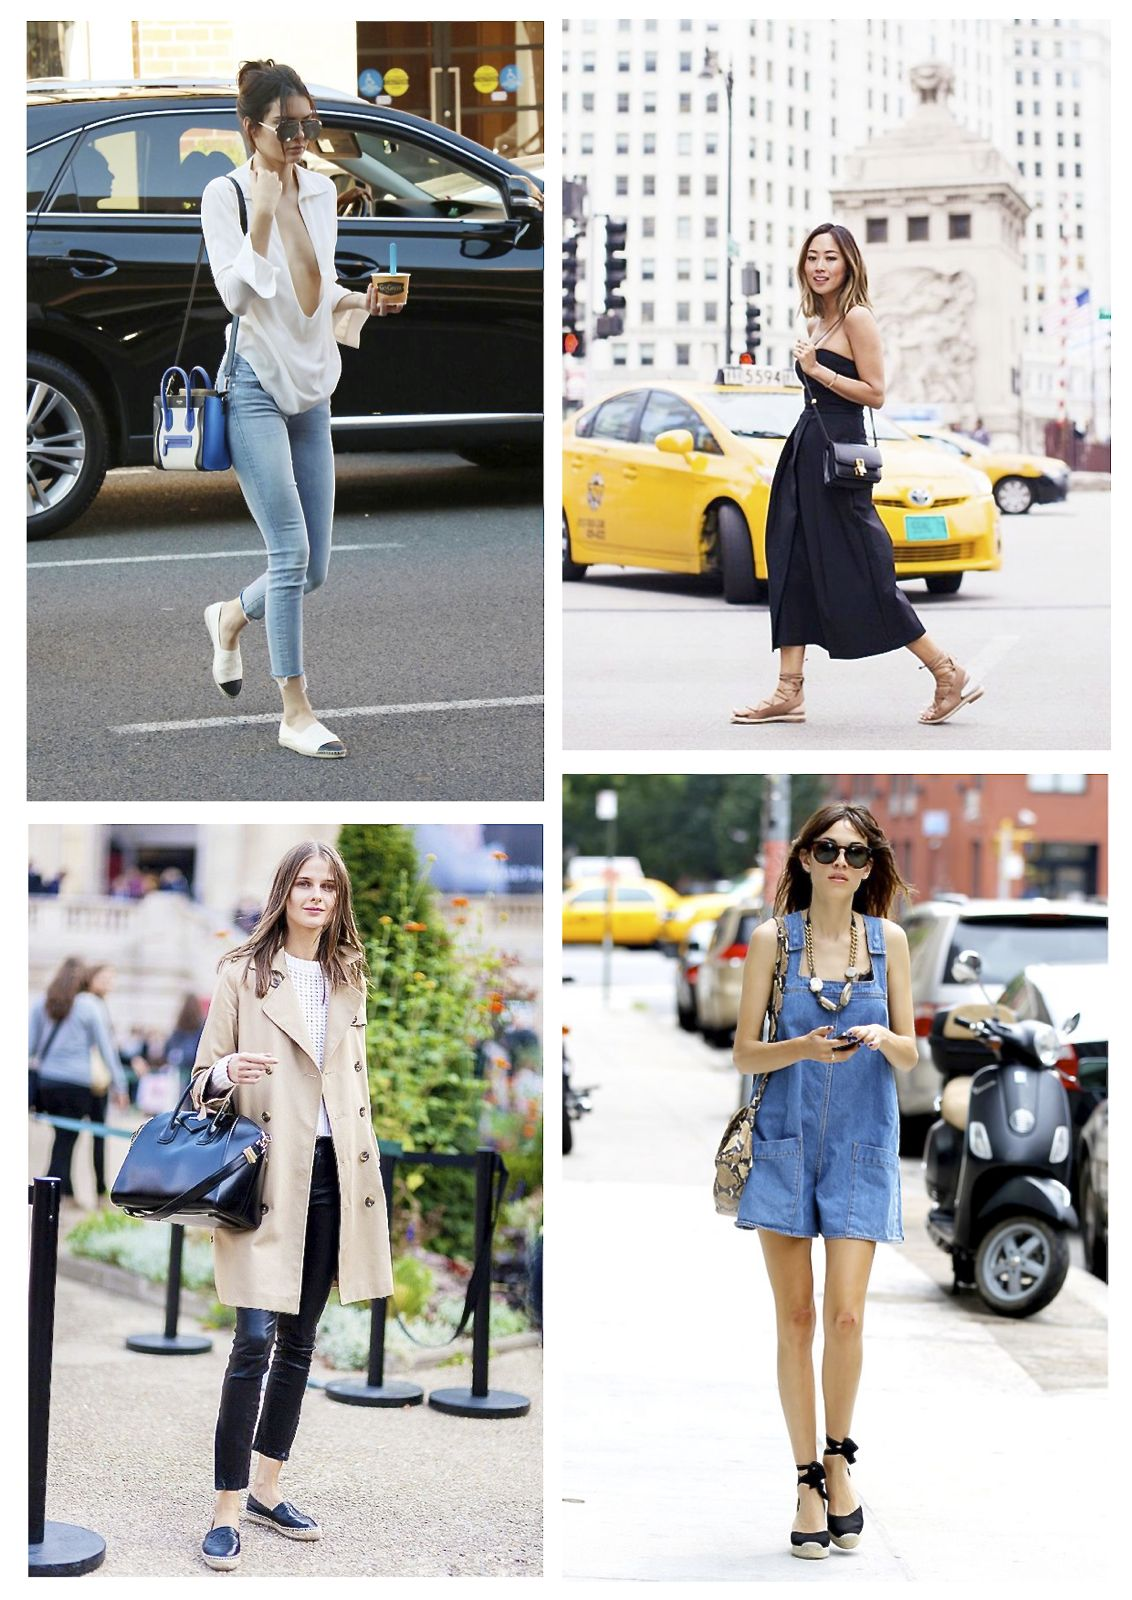 kendall-jenner-street-style-alexa-chung-street-style-how-to-wear-espadrilles-song-of-style